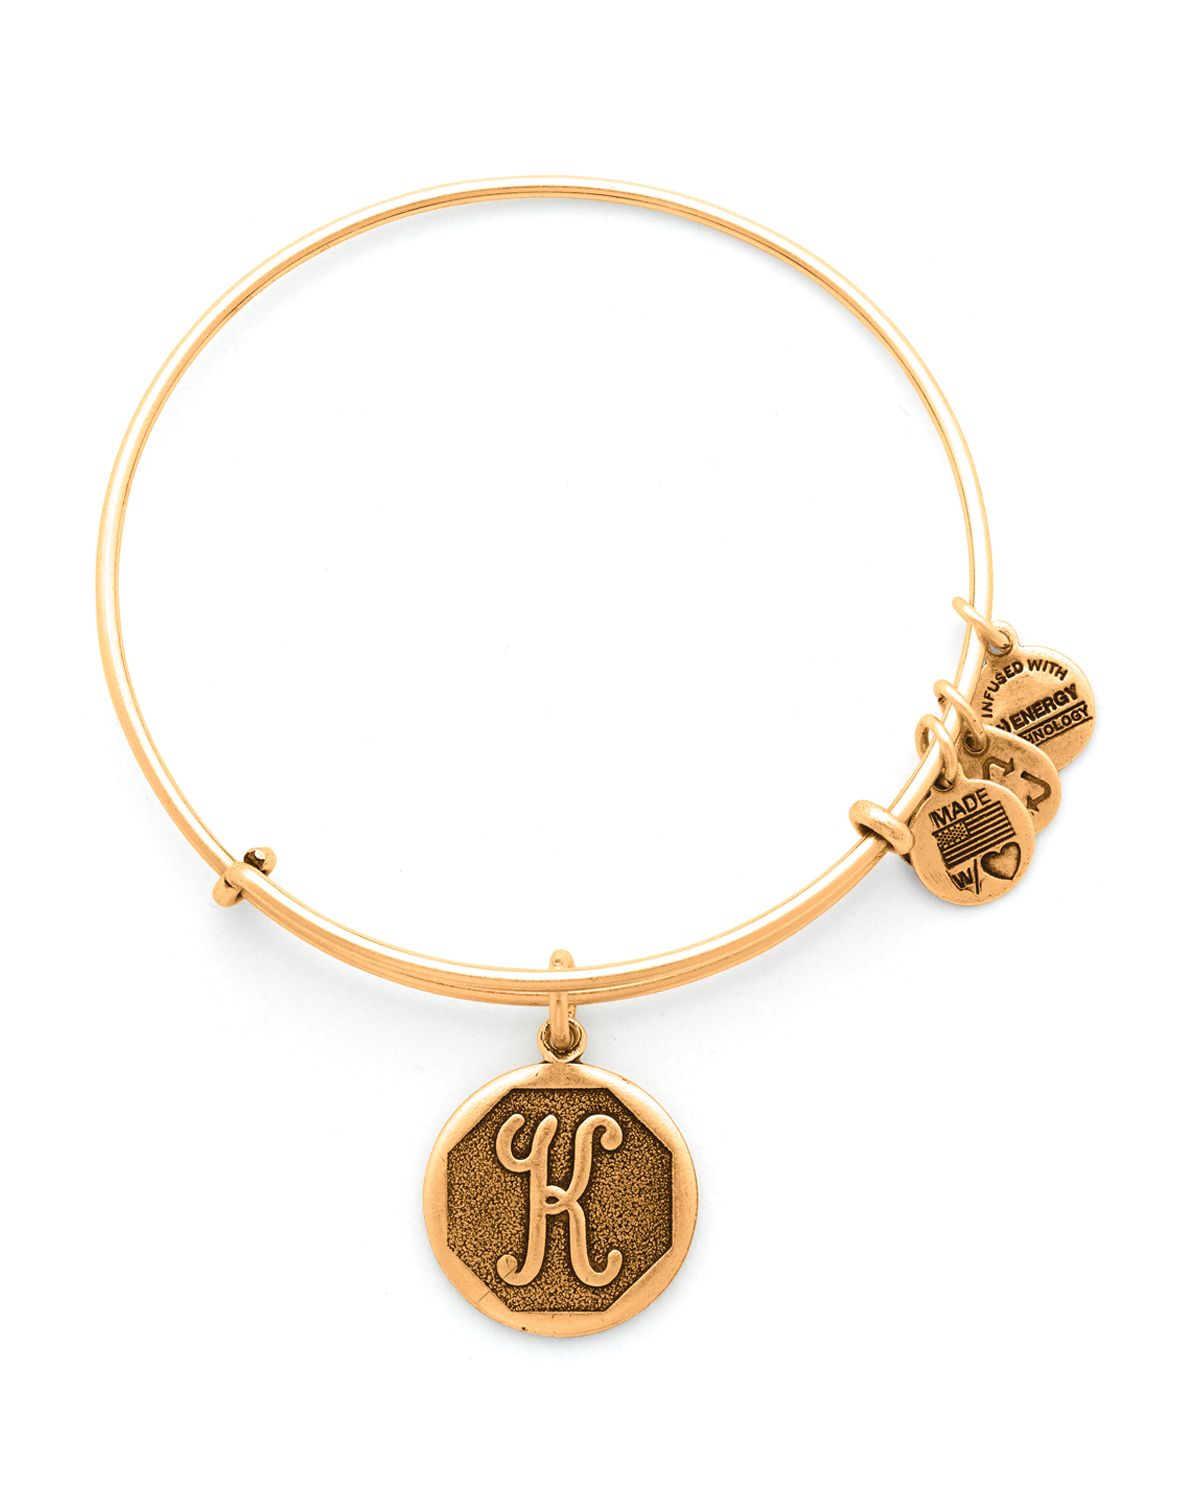 Alex and Ani Anchor III EN, Bangle Bracelet $ (as of December 4, , pm) A source of ground and security for seafarers, the Anchor is a powerful symbol of stability and hope.